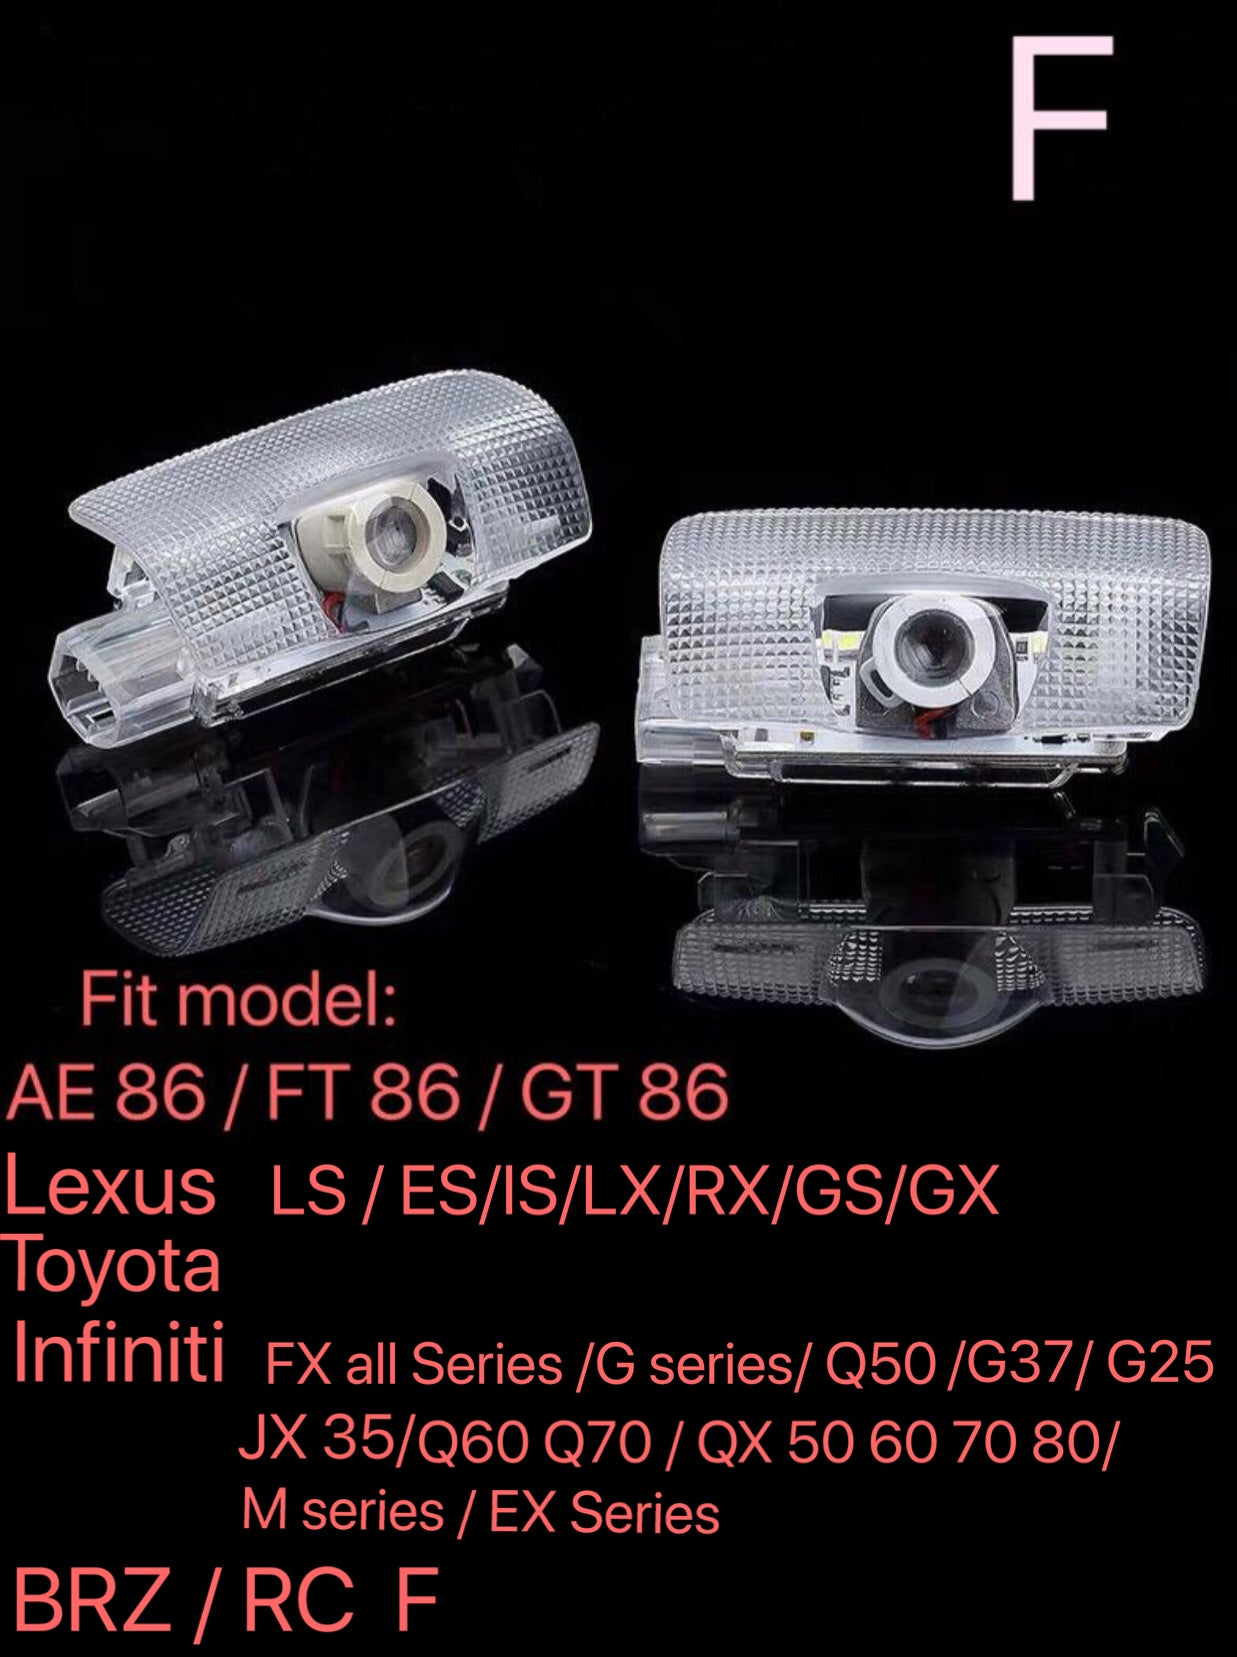 INFINTI G35 LOGO PROJECROTR LIGHTS Nr.38 (quantity 1 = 1 sets/2 door lights)